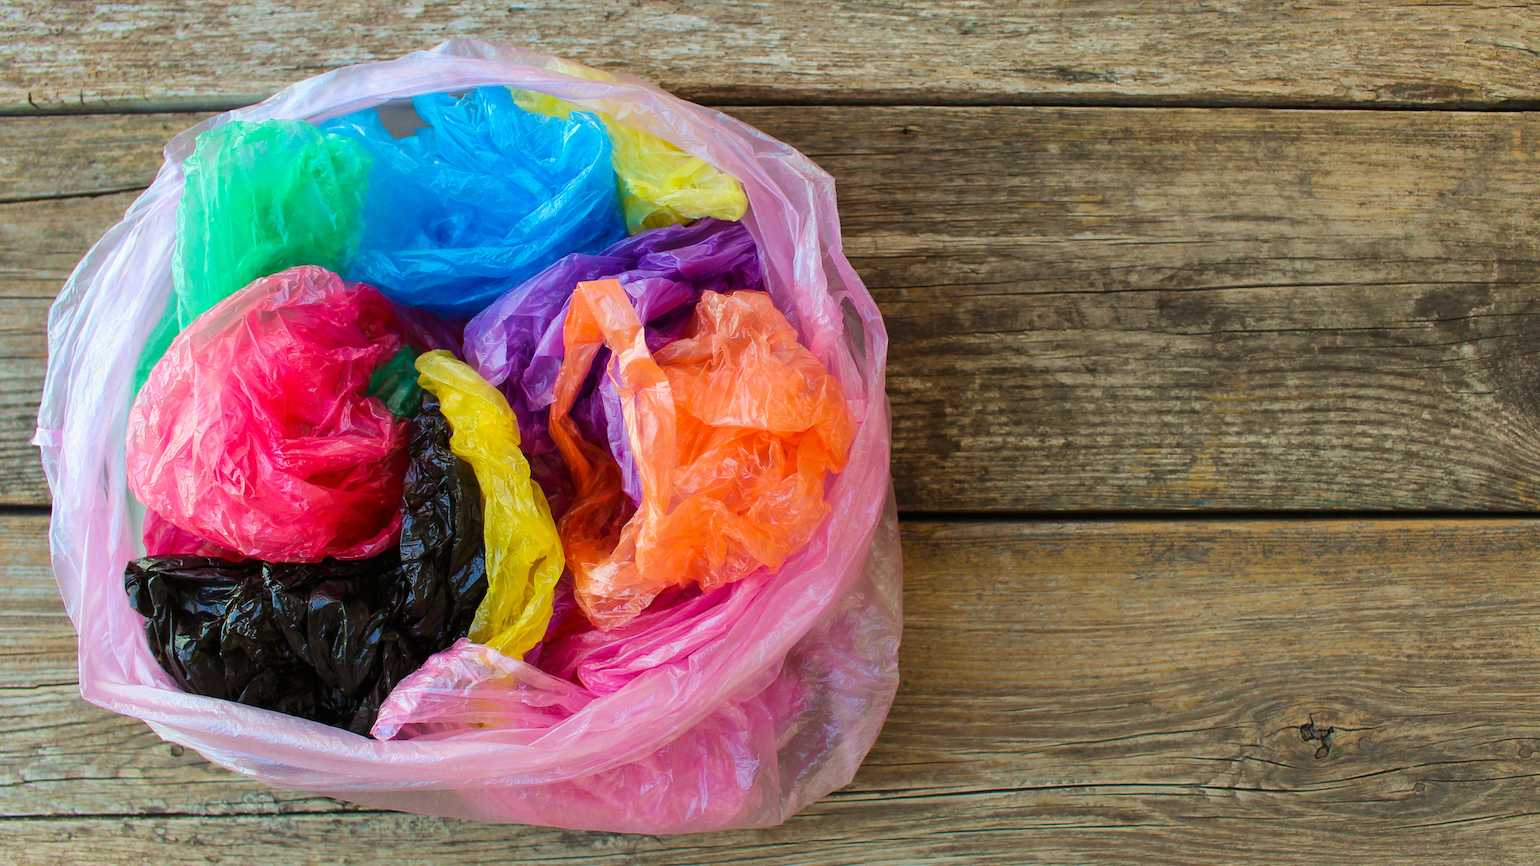 Creative uses for plastic bags